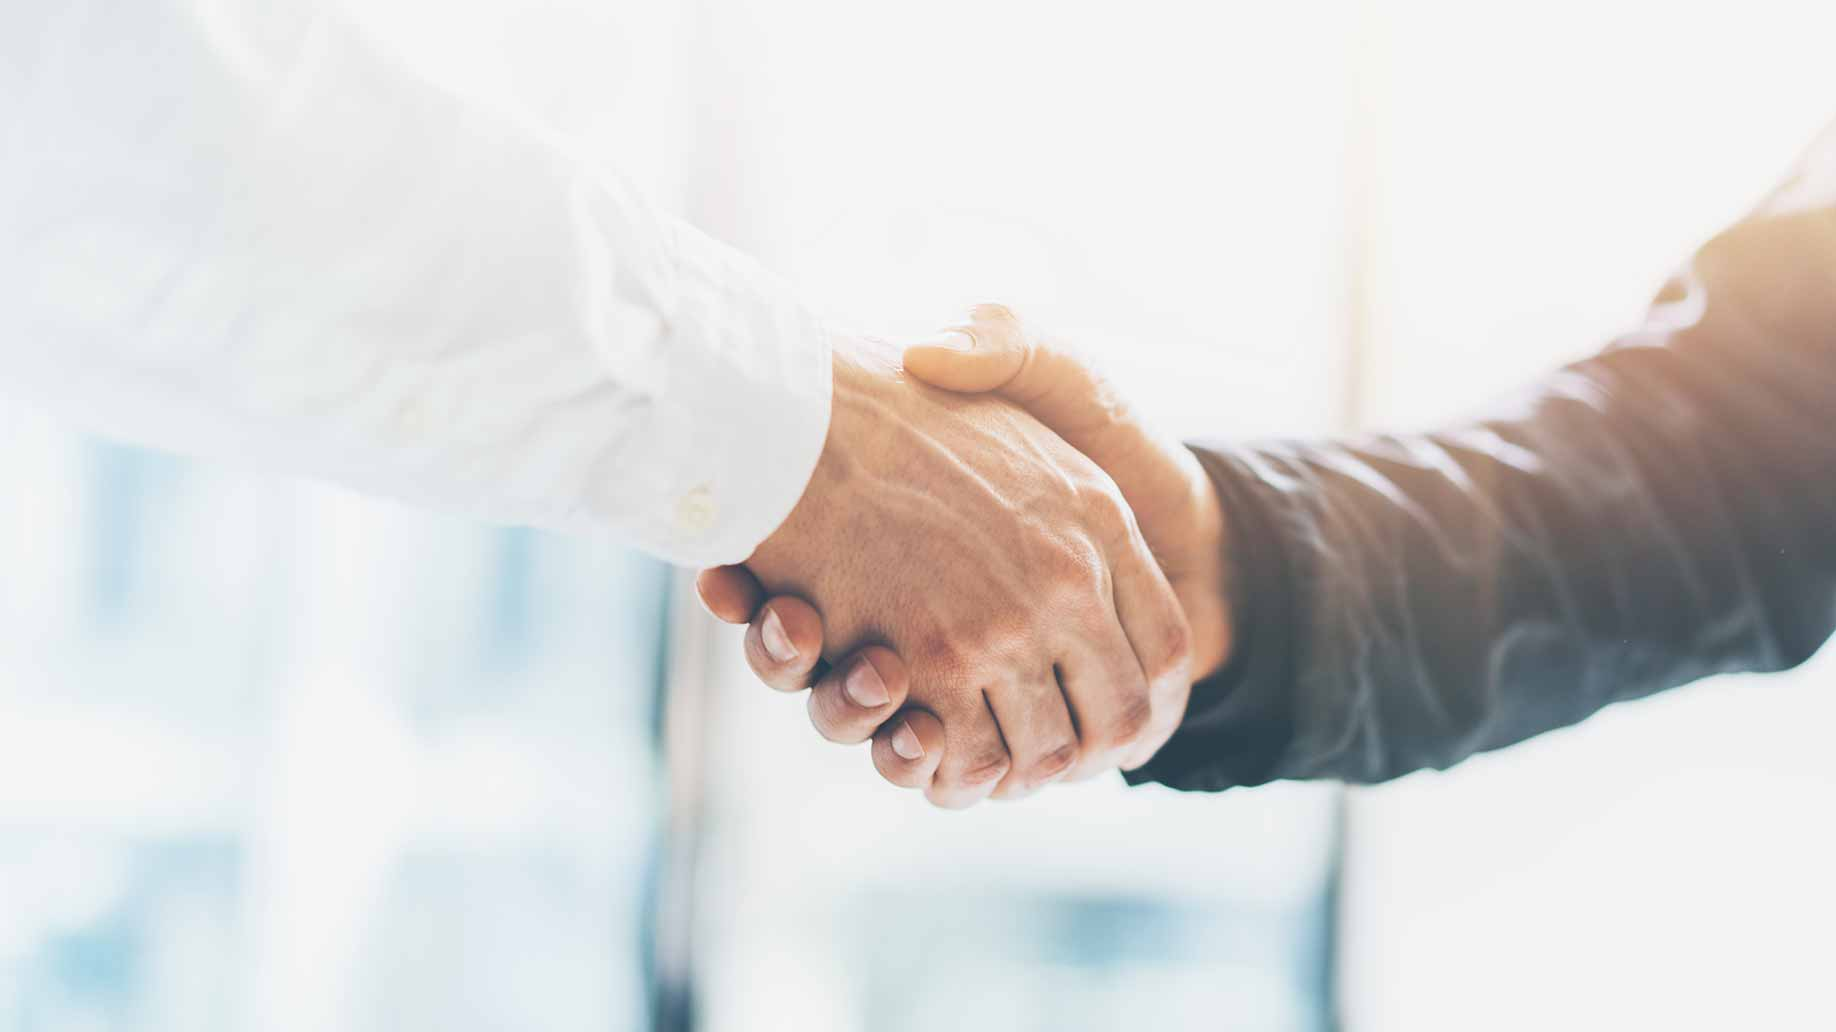 two people shaking hands to cement business partnership